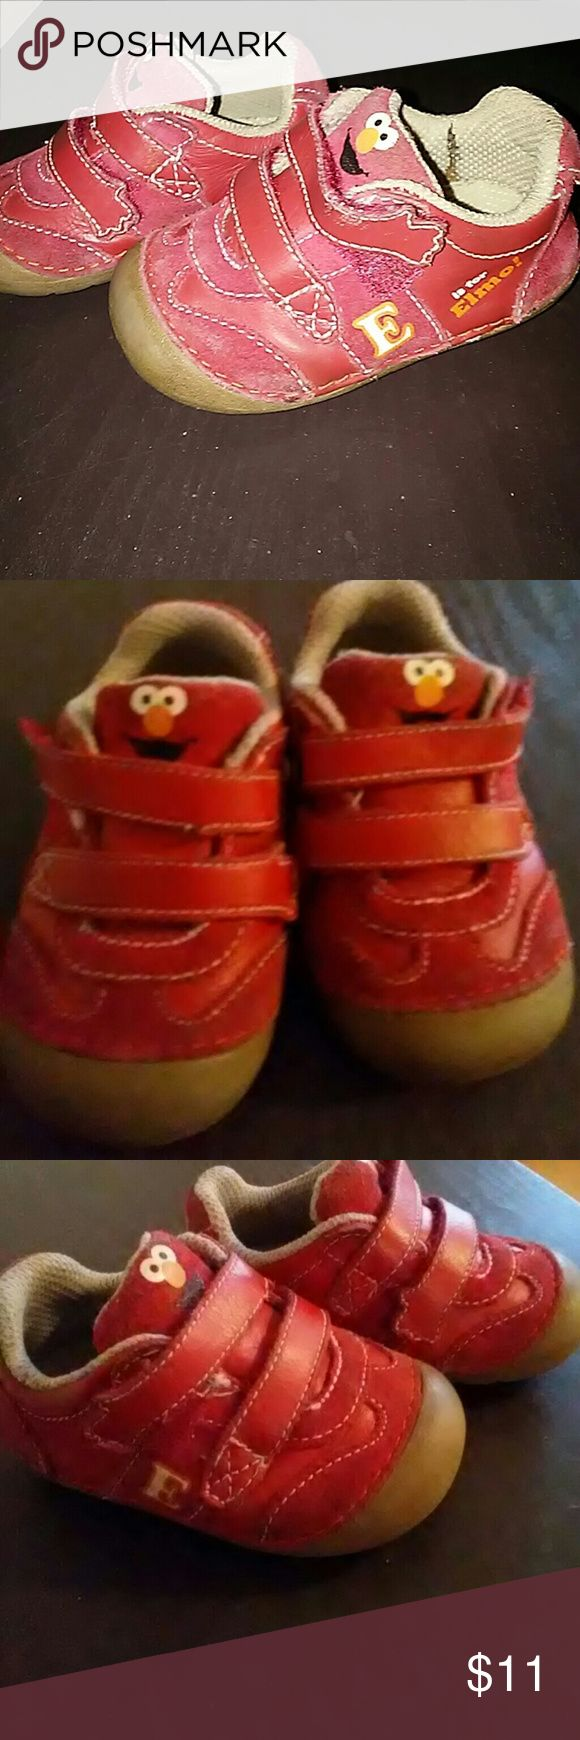 Stride Rite Elmo Baby Shoe Size 4 Adorable Elmo Stride Rite baby shoes, size 4. Does show minimal wear along the tongue of the shoe as shown in pictures. Stride Rite Shoes Sneakers